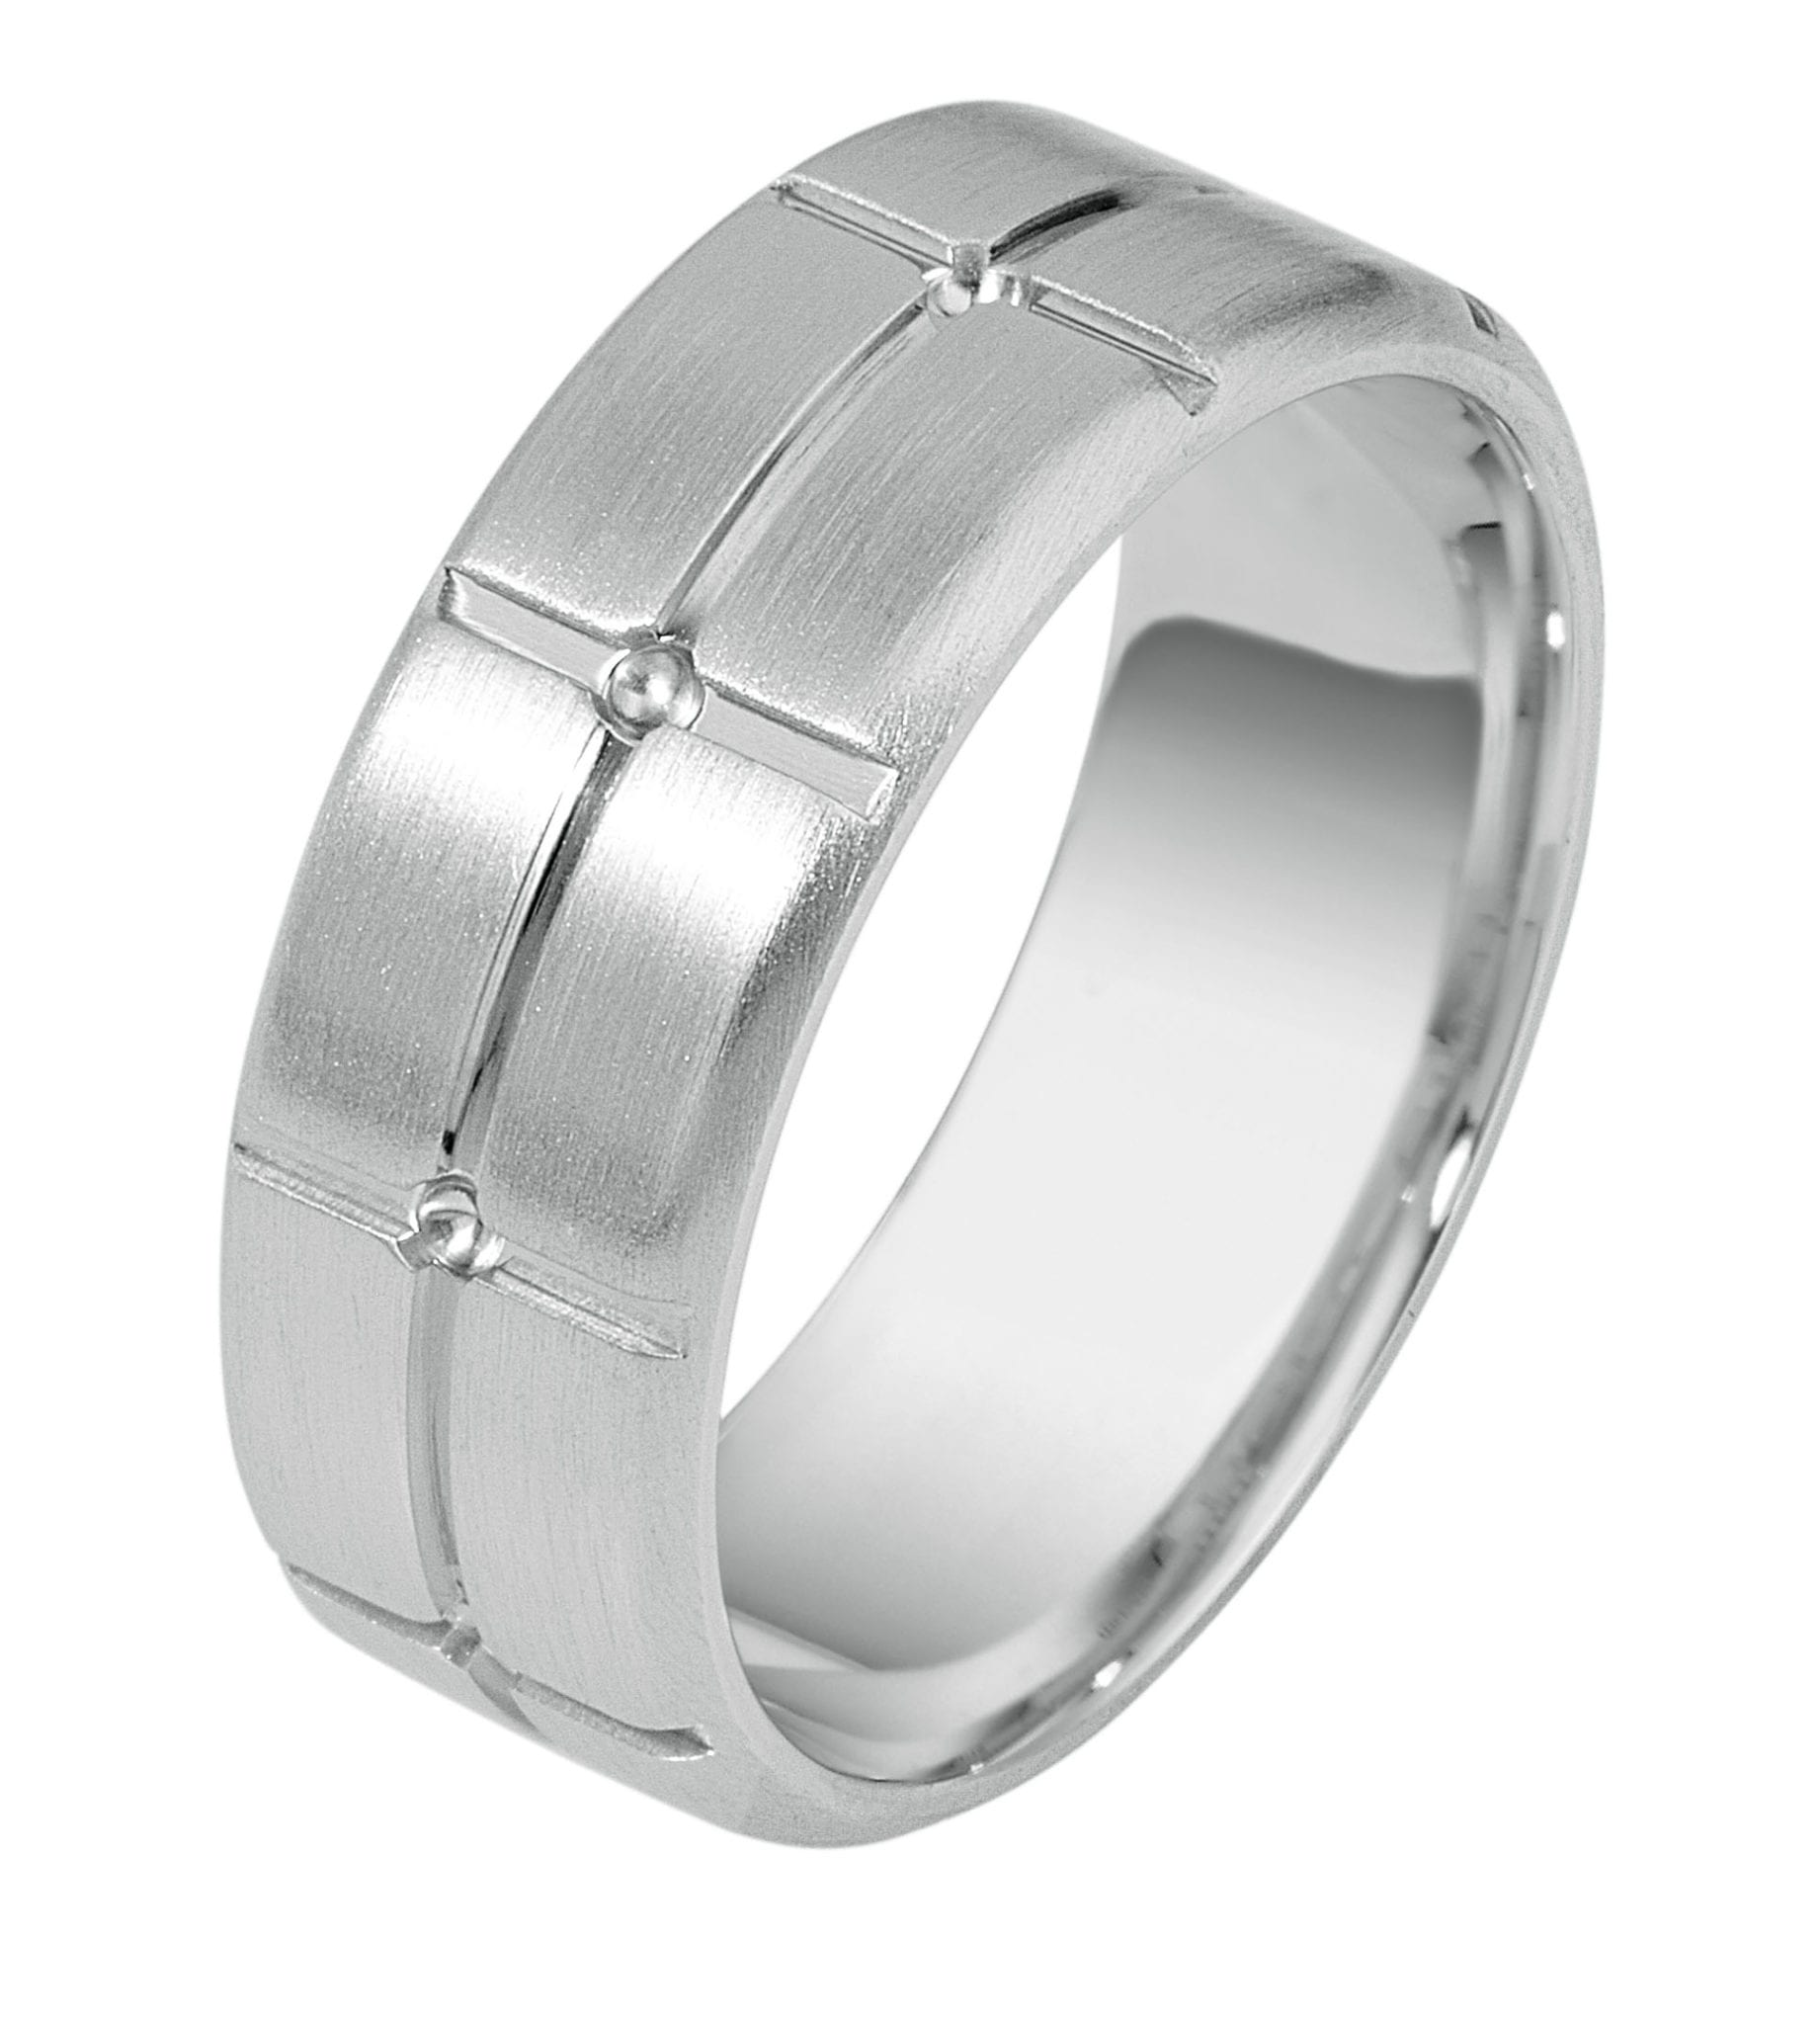 for and ideas tire modern idea jewellery wedding band mens bands elasdress unique design with like coolest